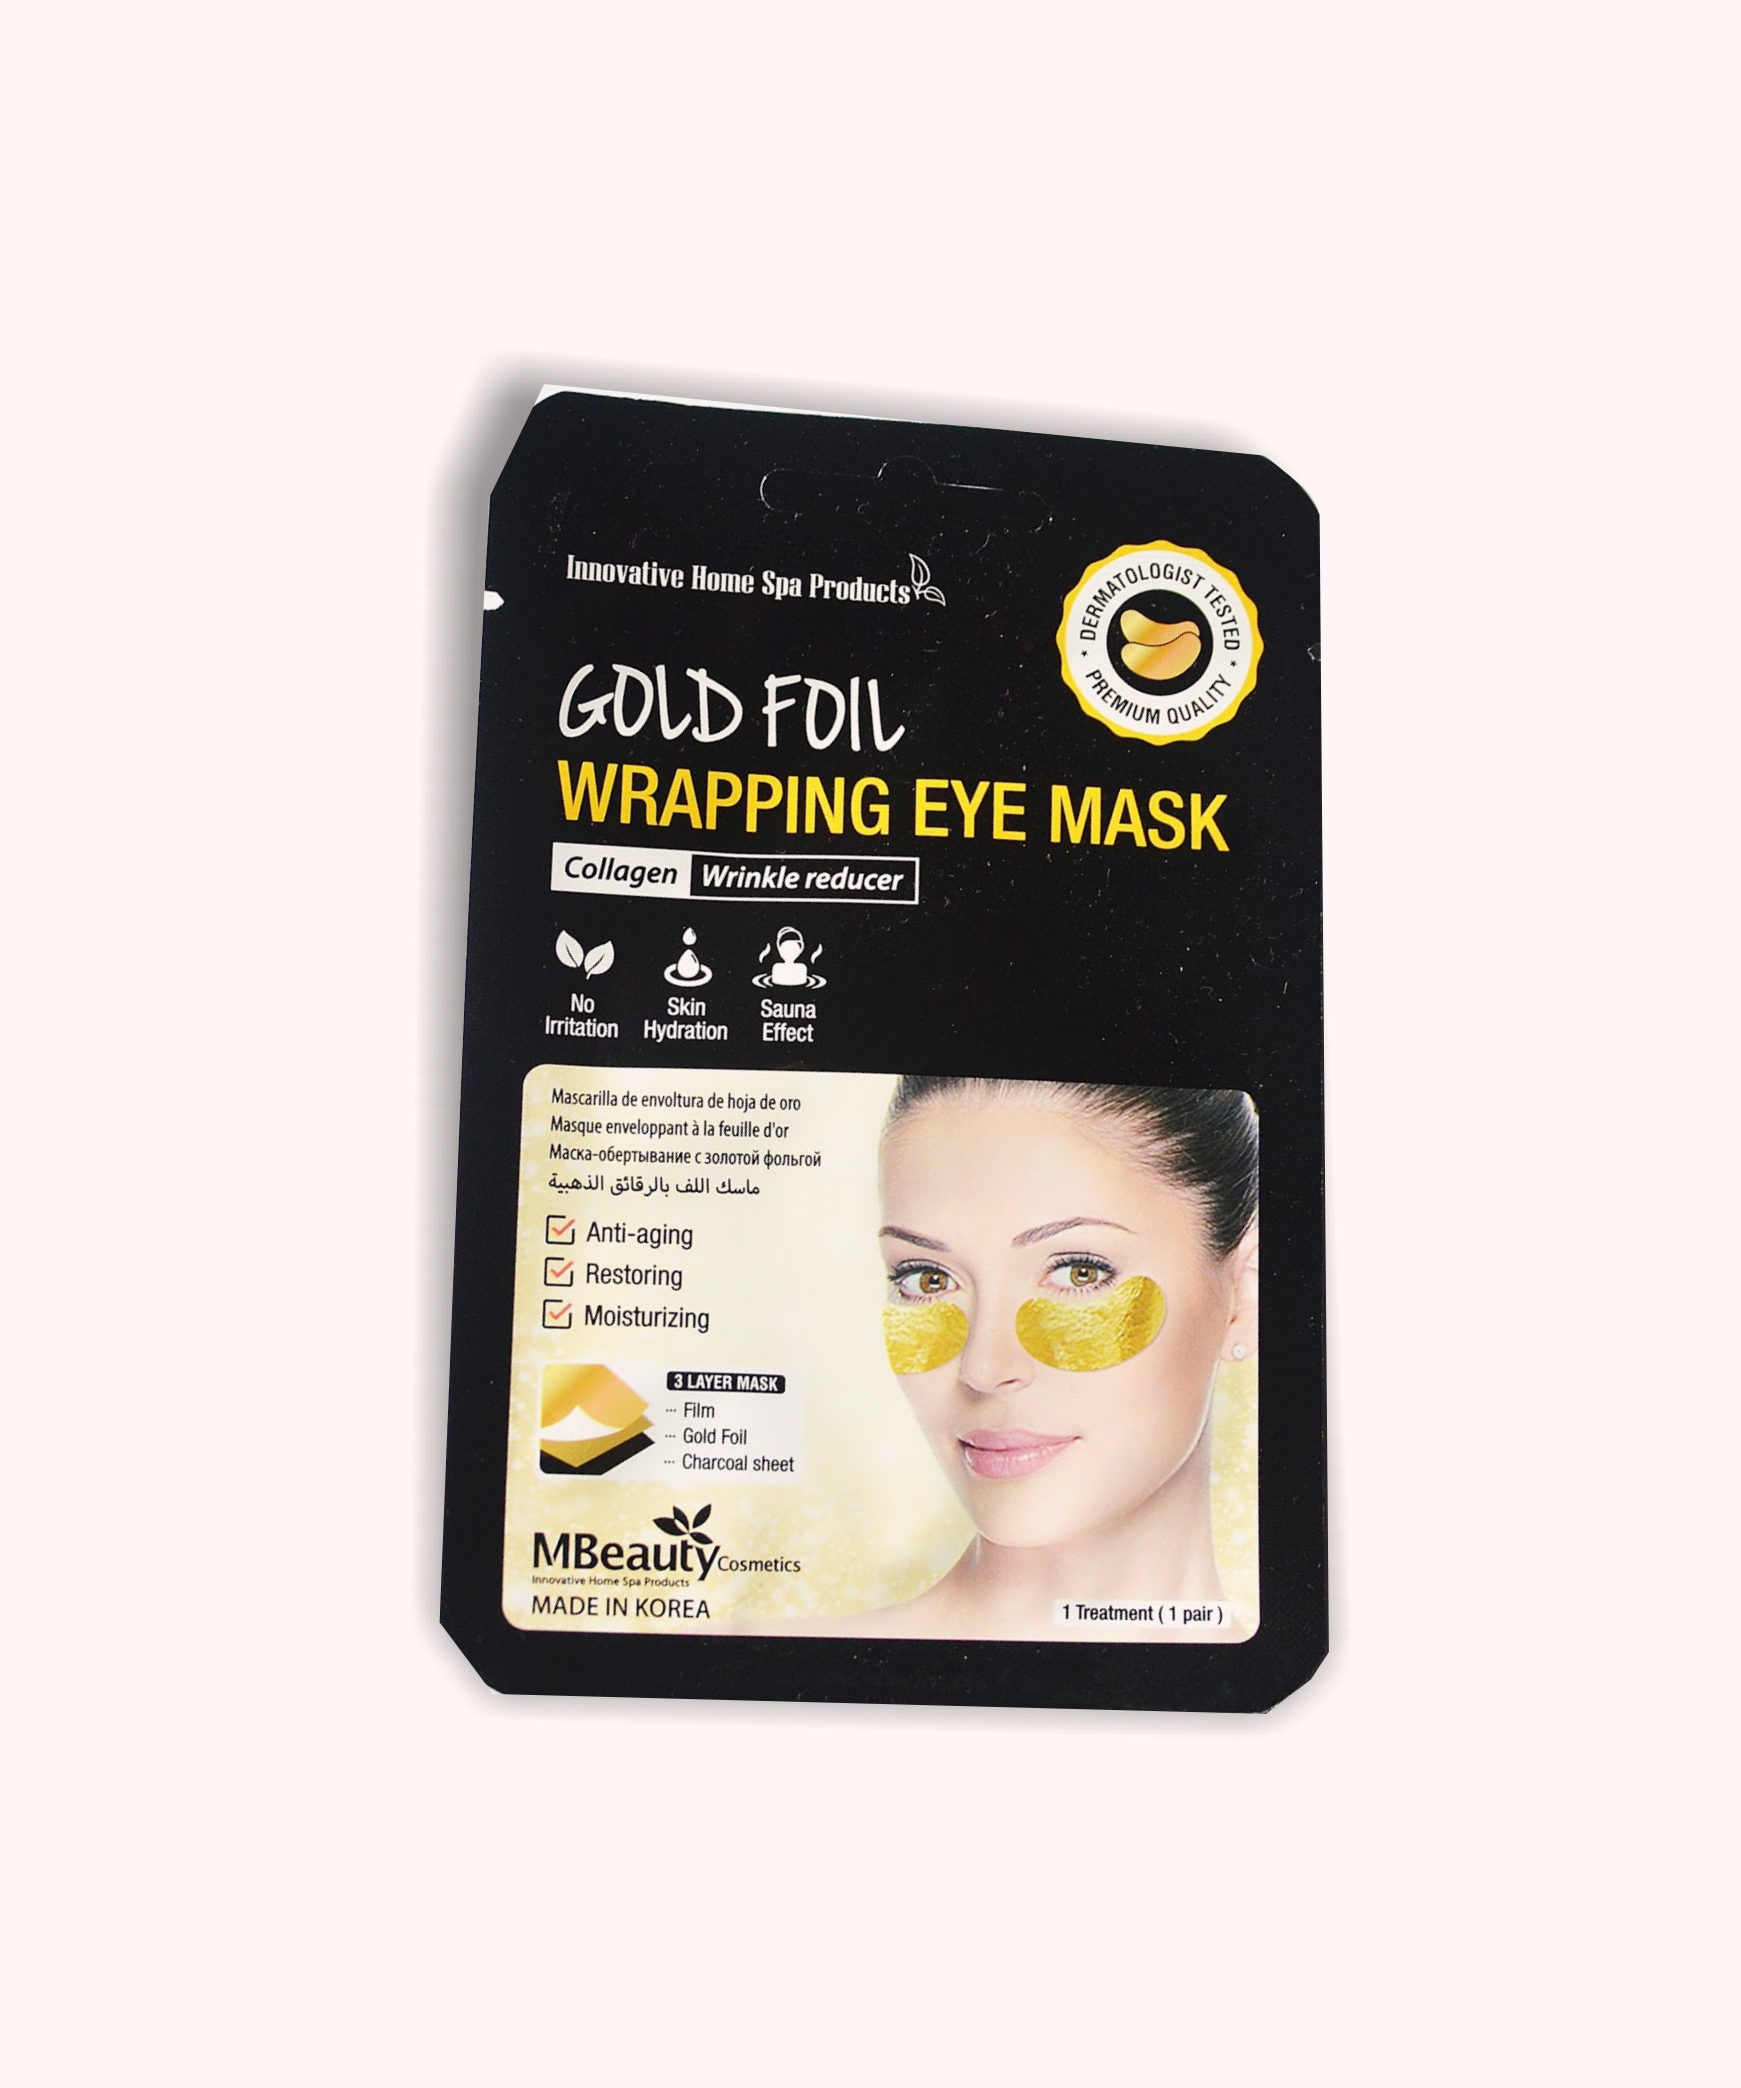 BRIGHTENING GOLD FOIL WRAPPING EYE MASK